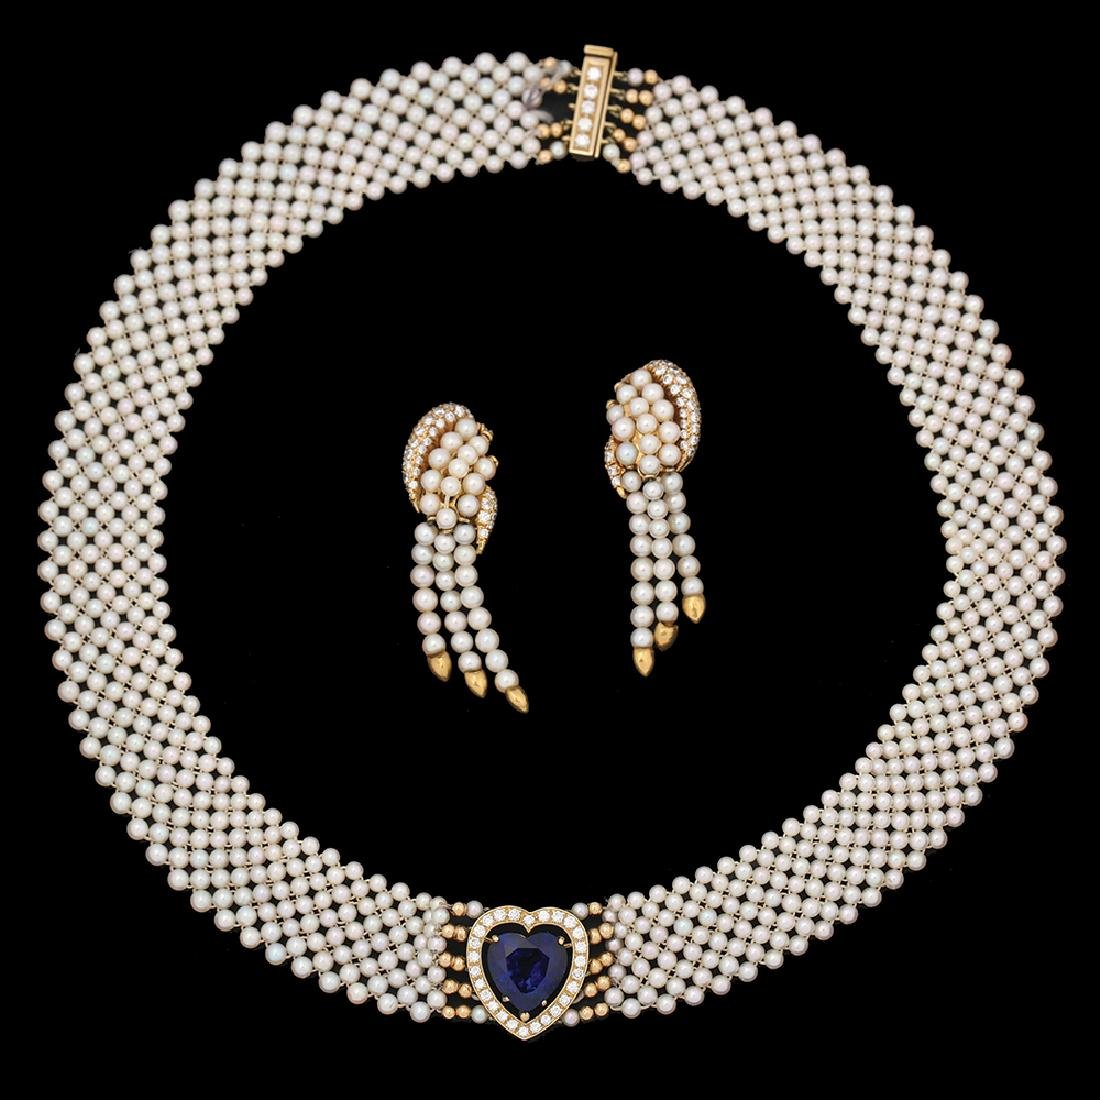 AN 18K GOLD PEARLS NECKLACE AND PAIR OF EARRINGS